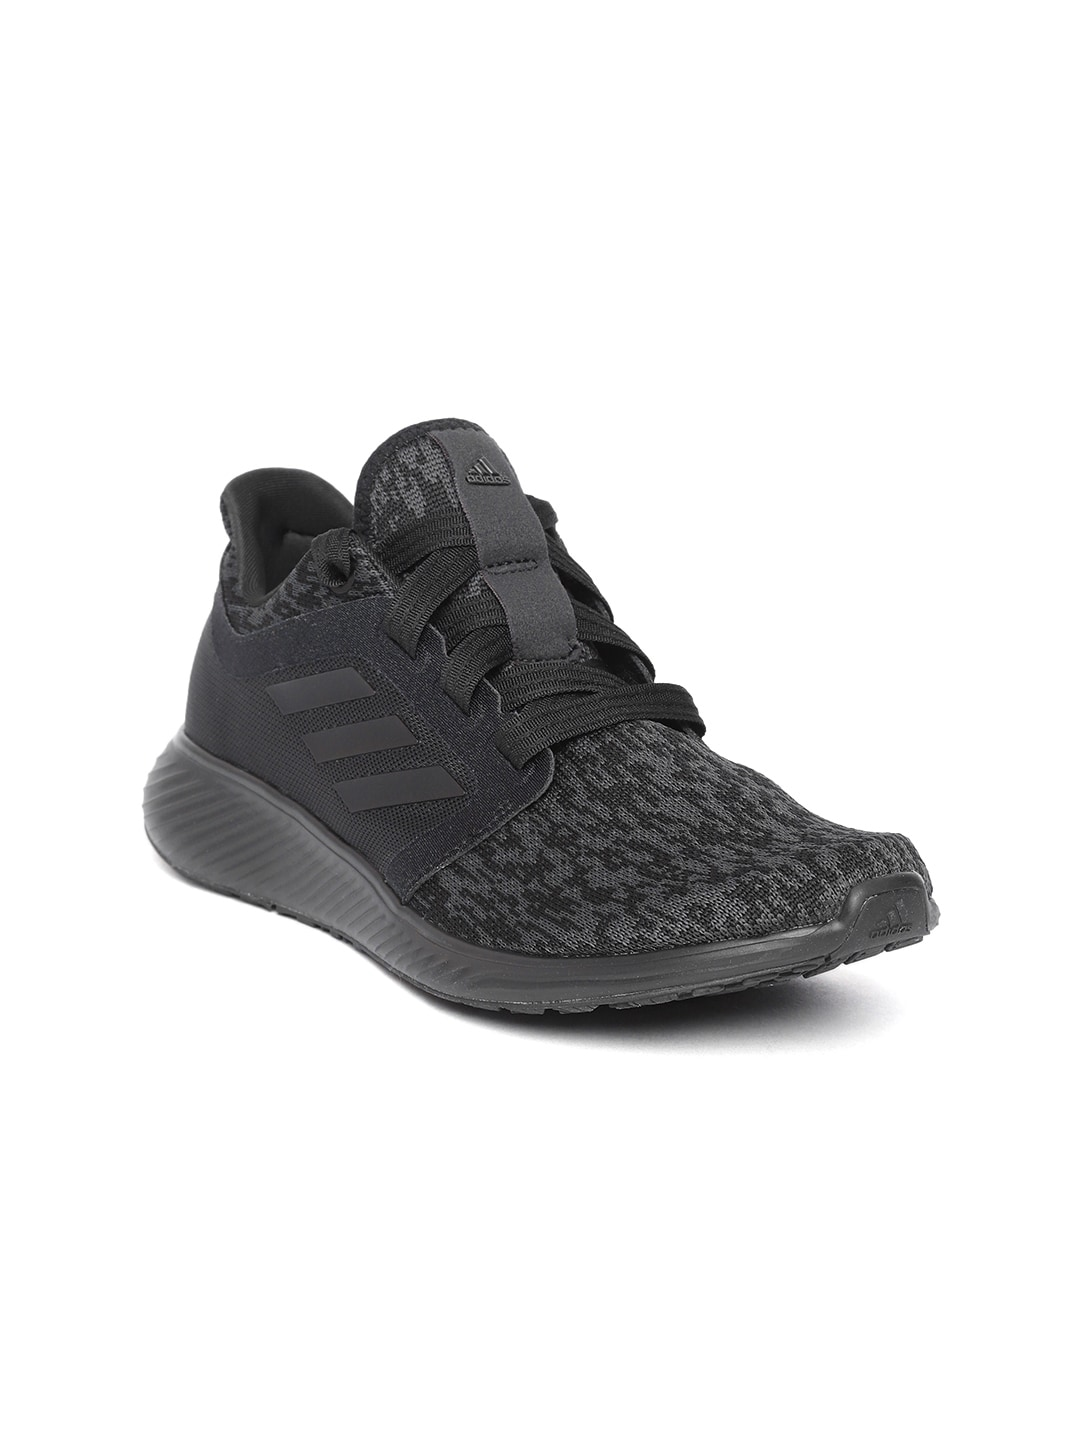 77337b701 Women s Adidas Shoes - Buy Adidas Shoes for Women Online in India